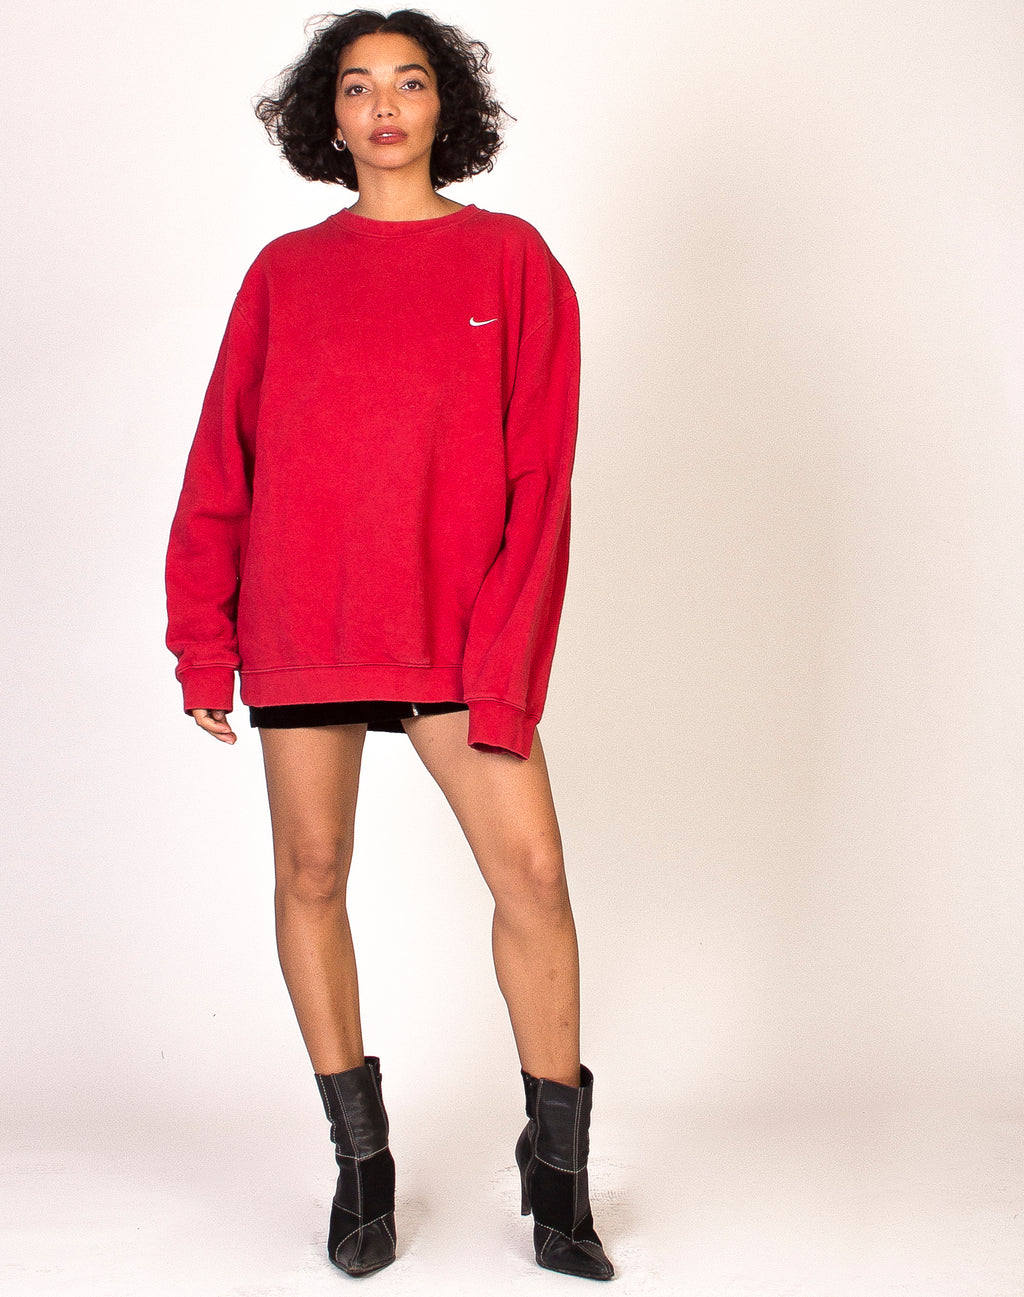 NIKE RED TICK SWEATSHIRT